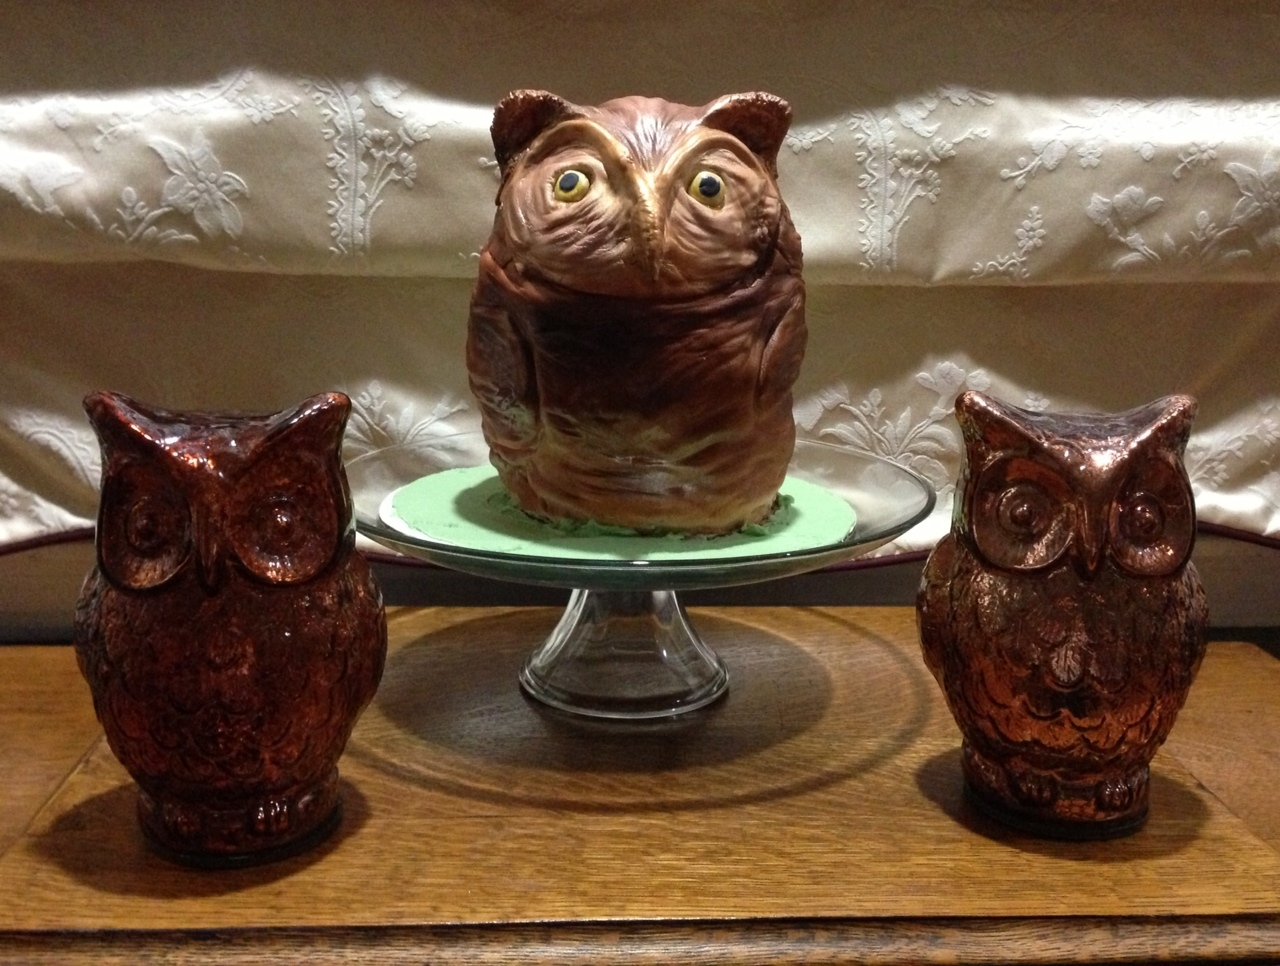 Owl Owl cake for my son. It was modeled after the two owl statues that my son keeps in his room.